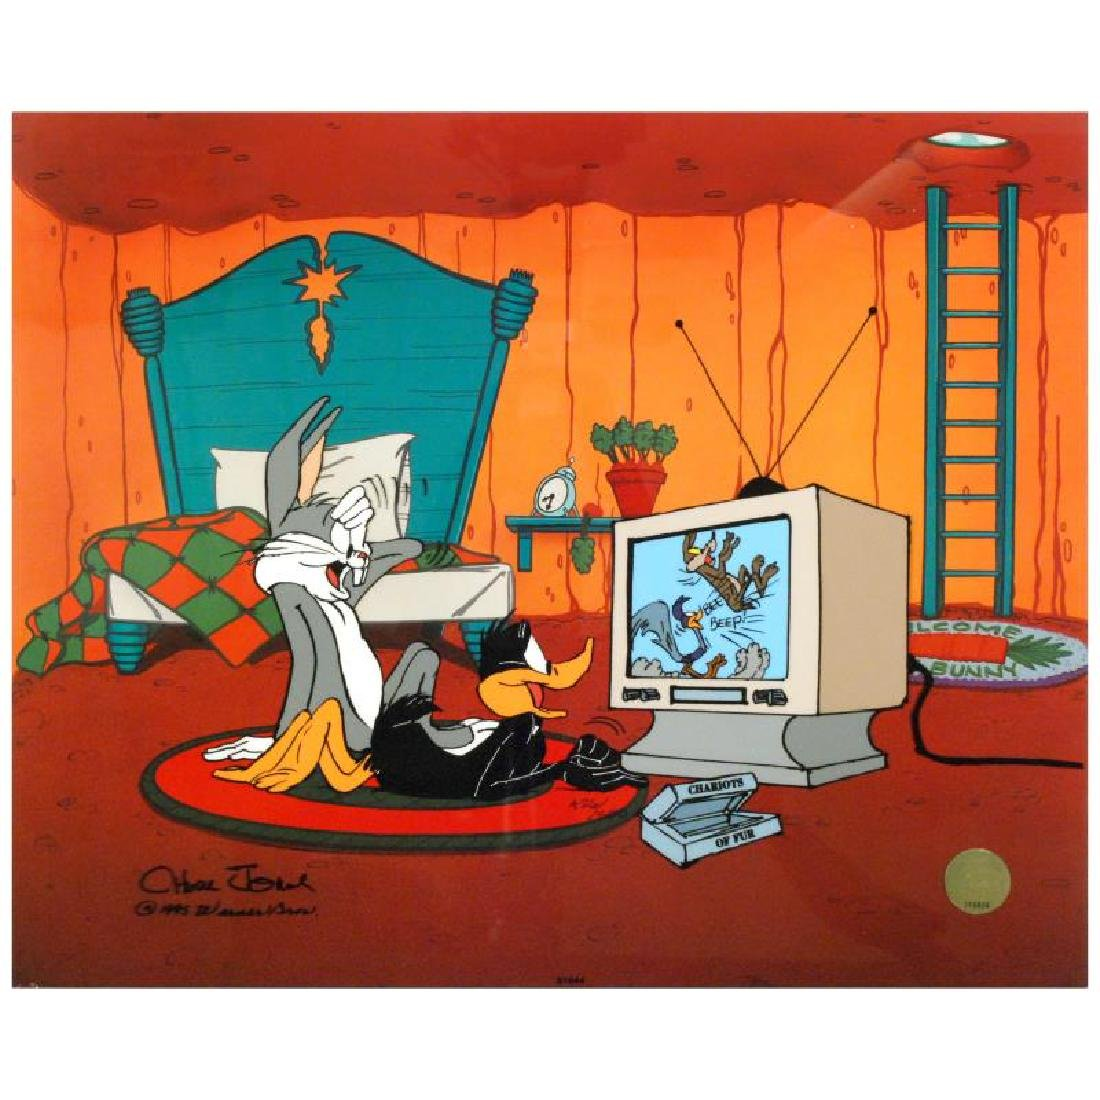 Just Fur Laughs by Chuck Jones (1912-2002)